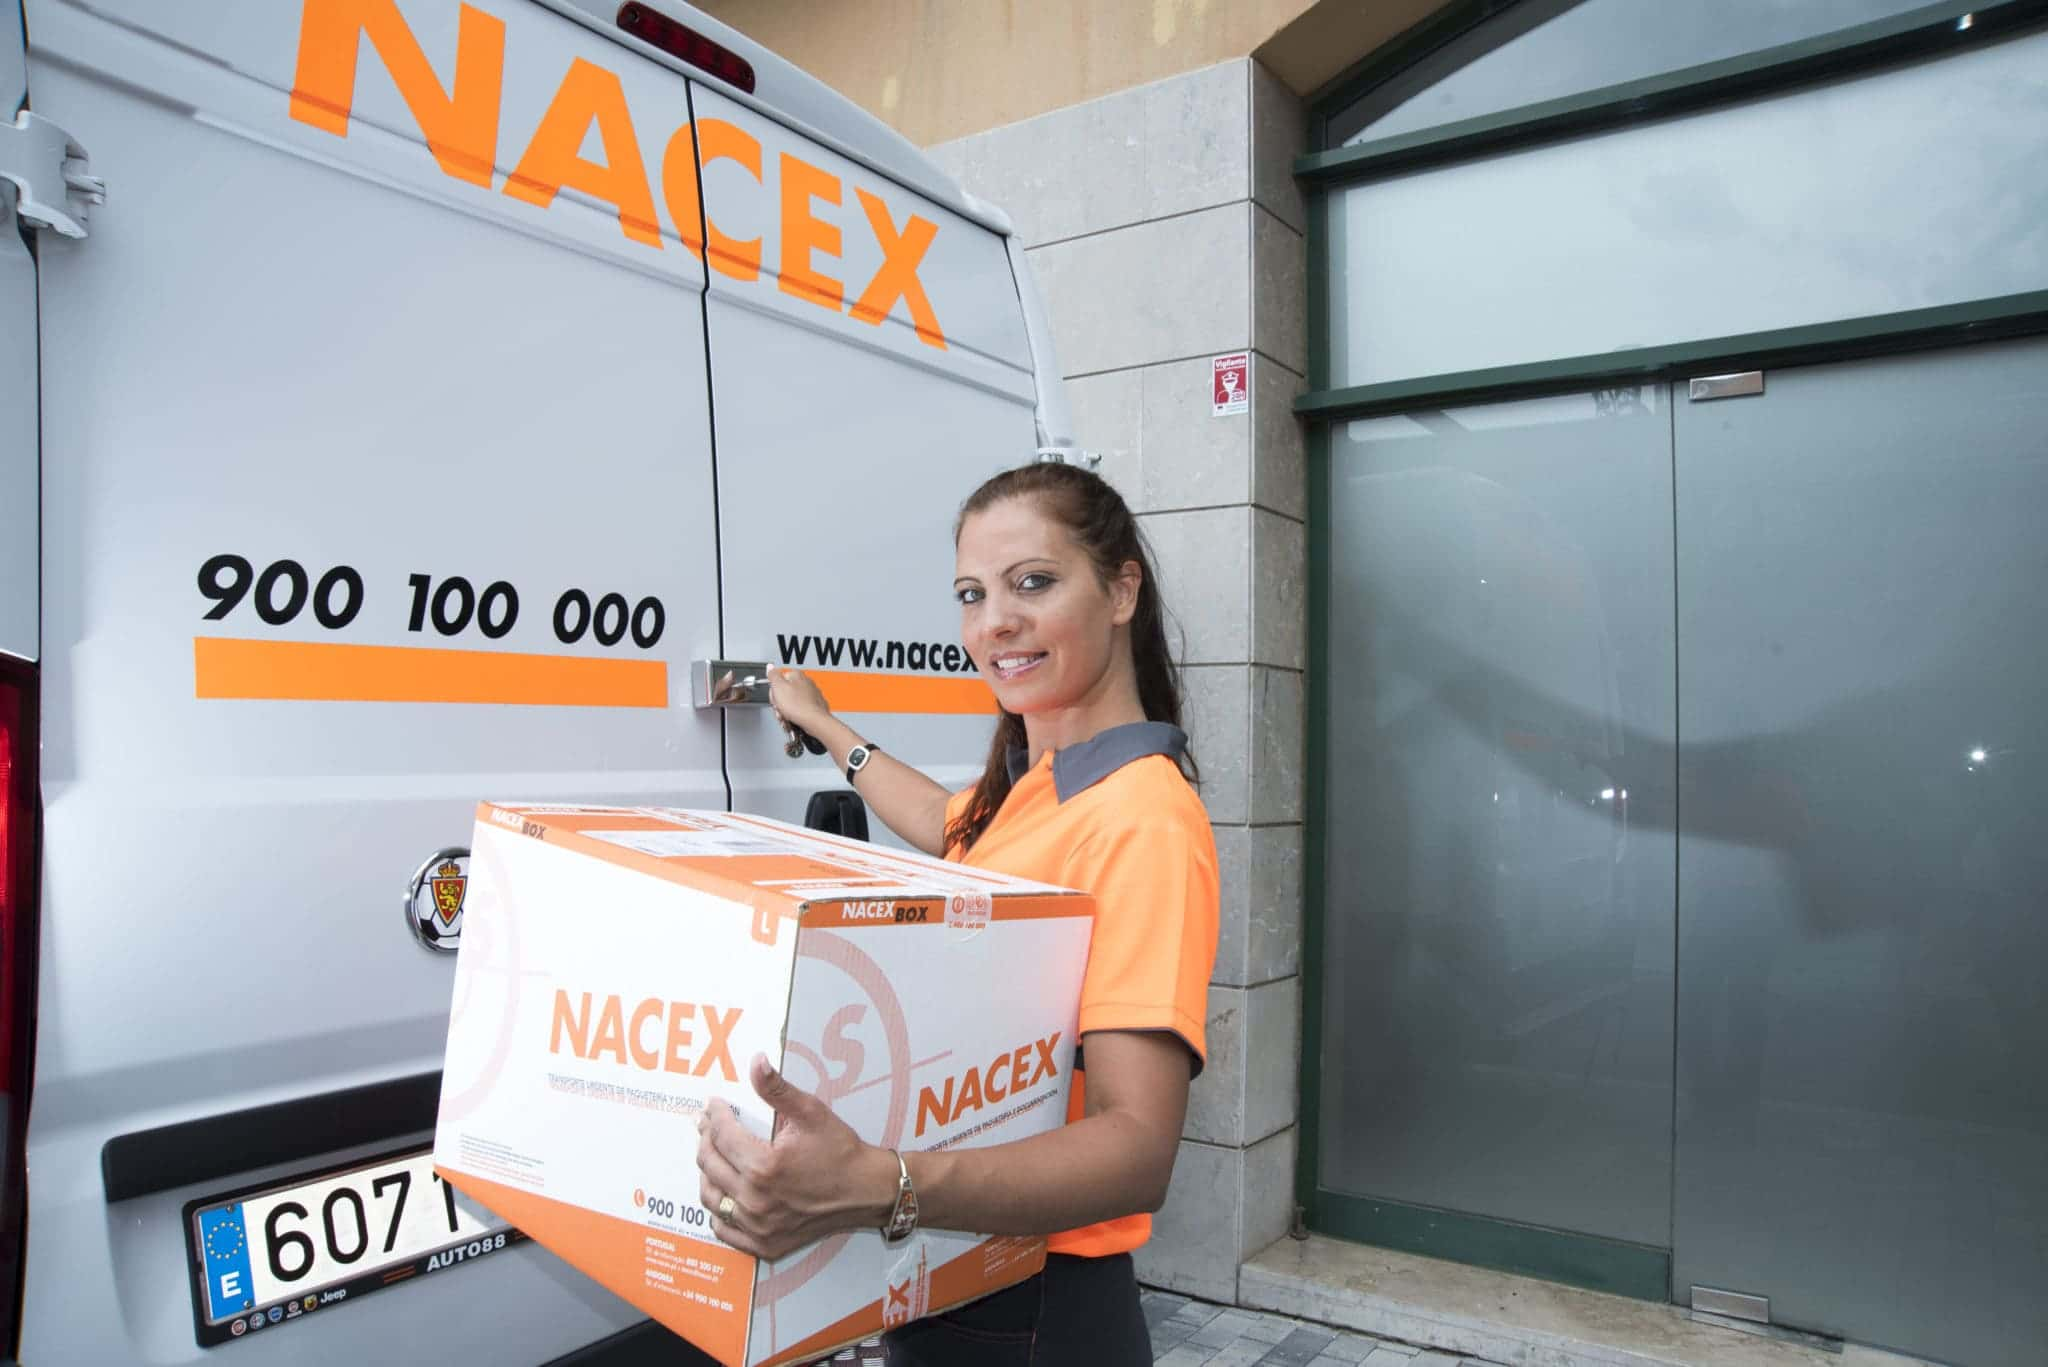 nacex worker delivering packages